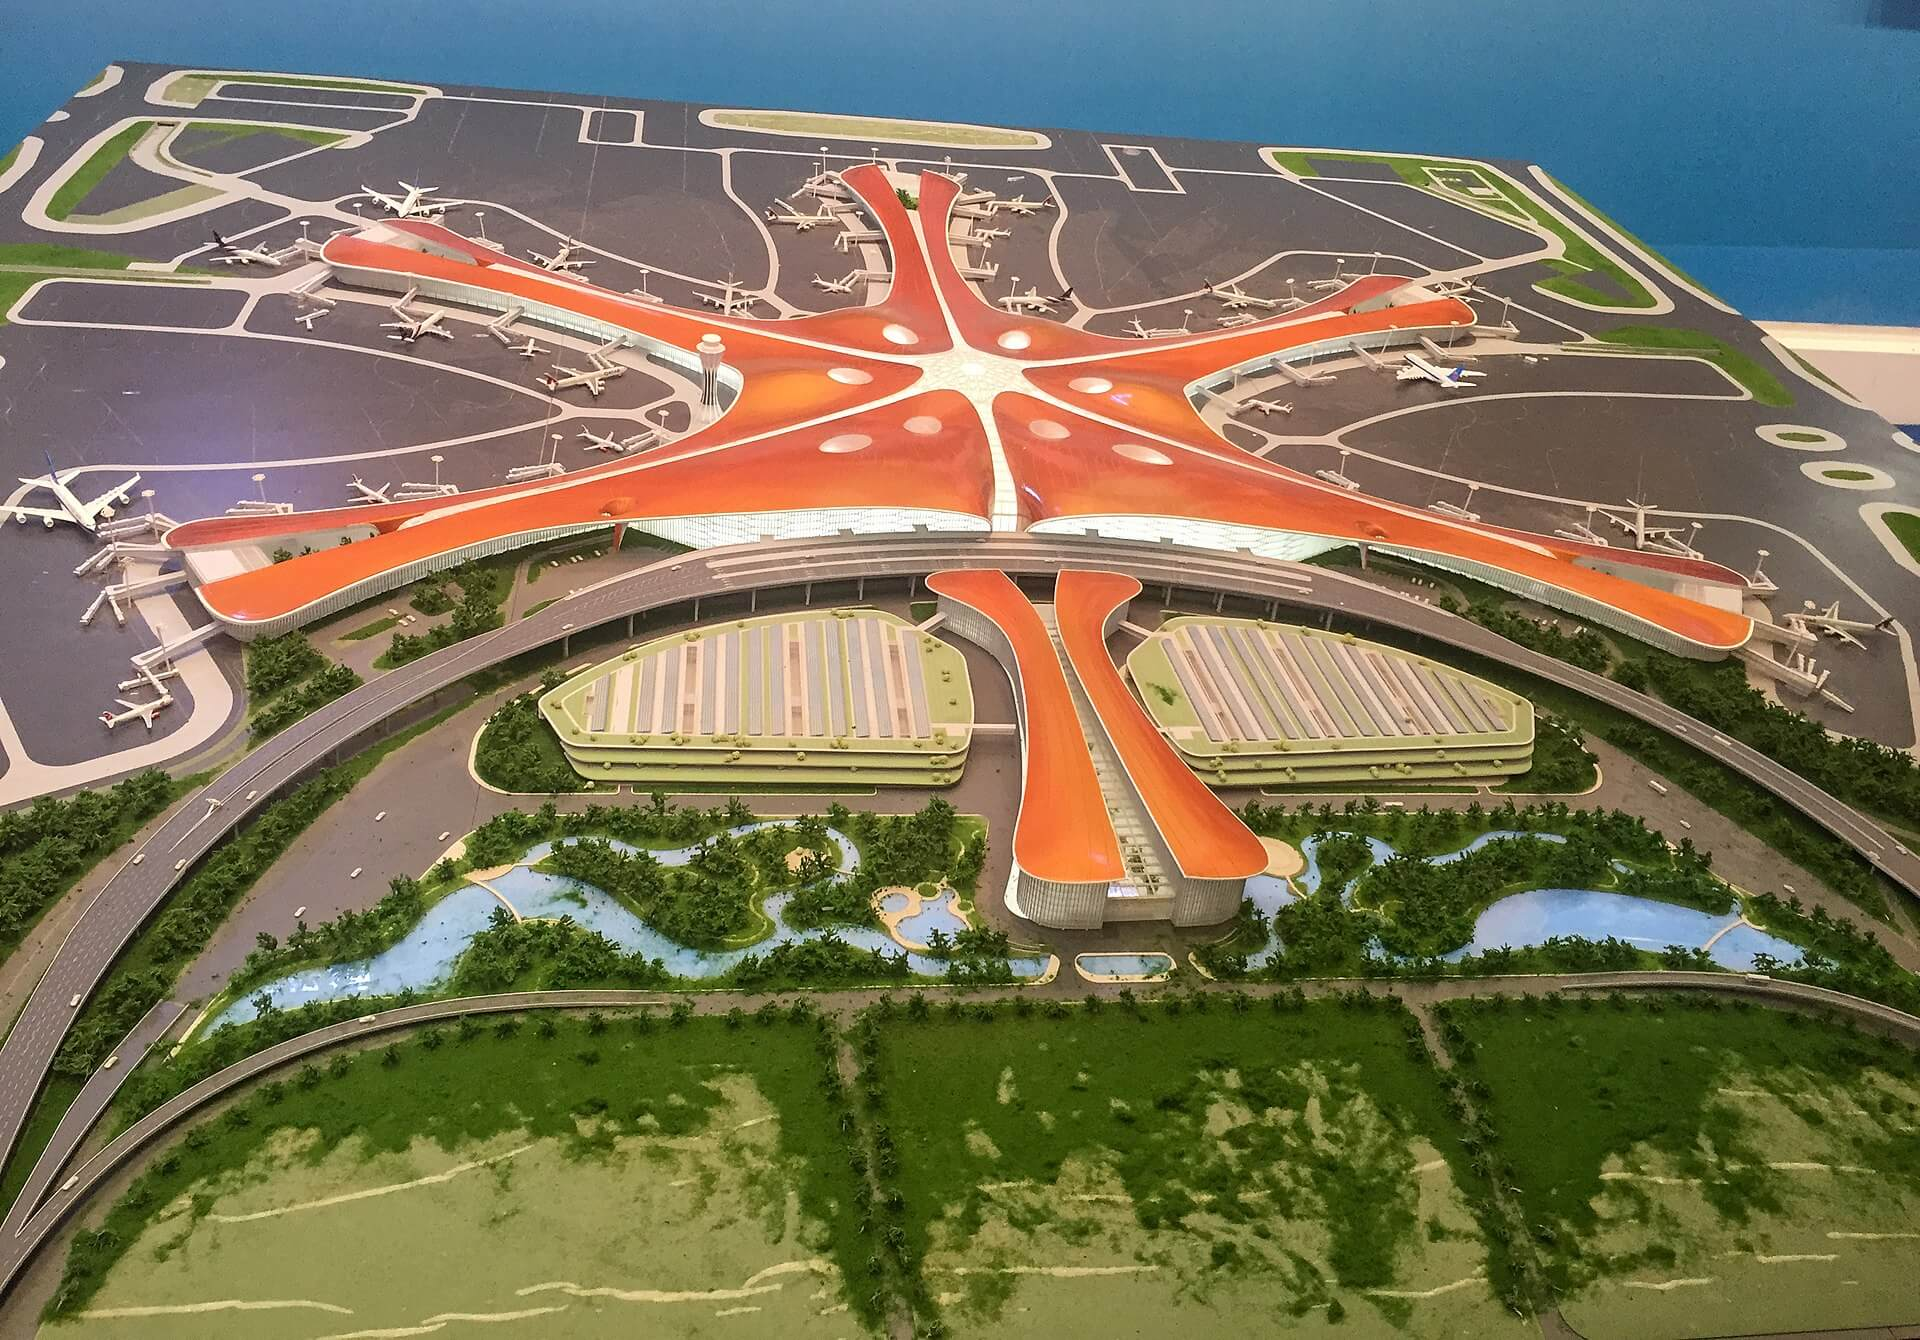 1920px-Model_of_Beijing_New_Airport_at_the_F Five-year_Achievements_Exhibitions_20171015150600